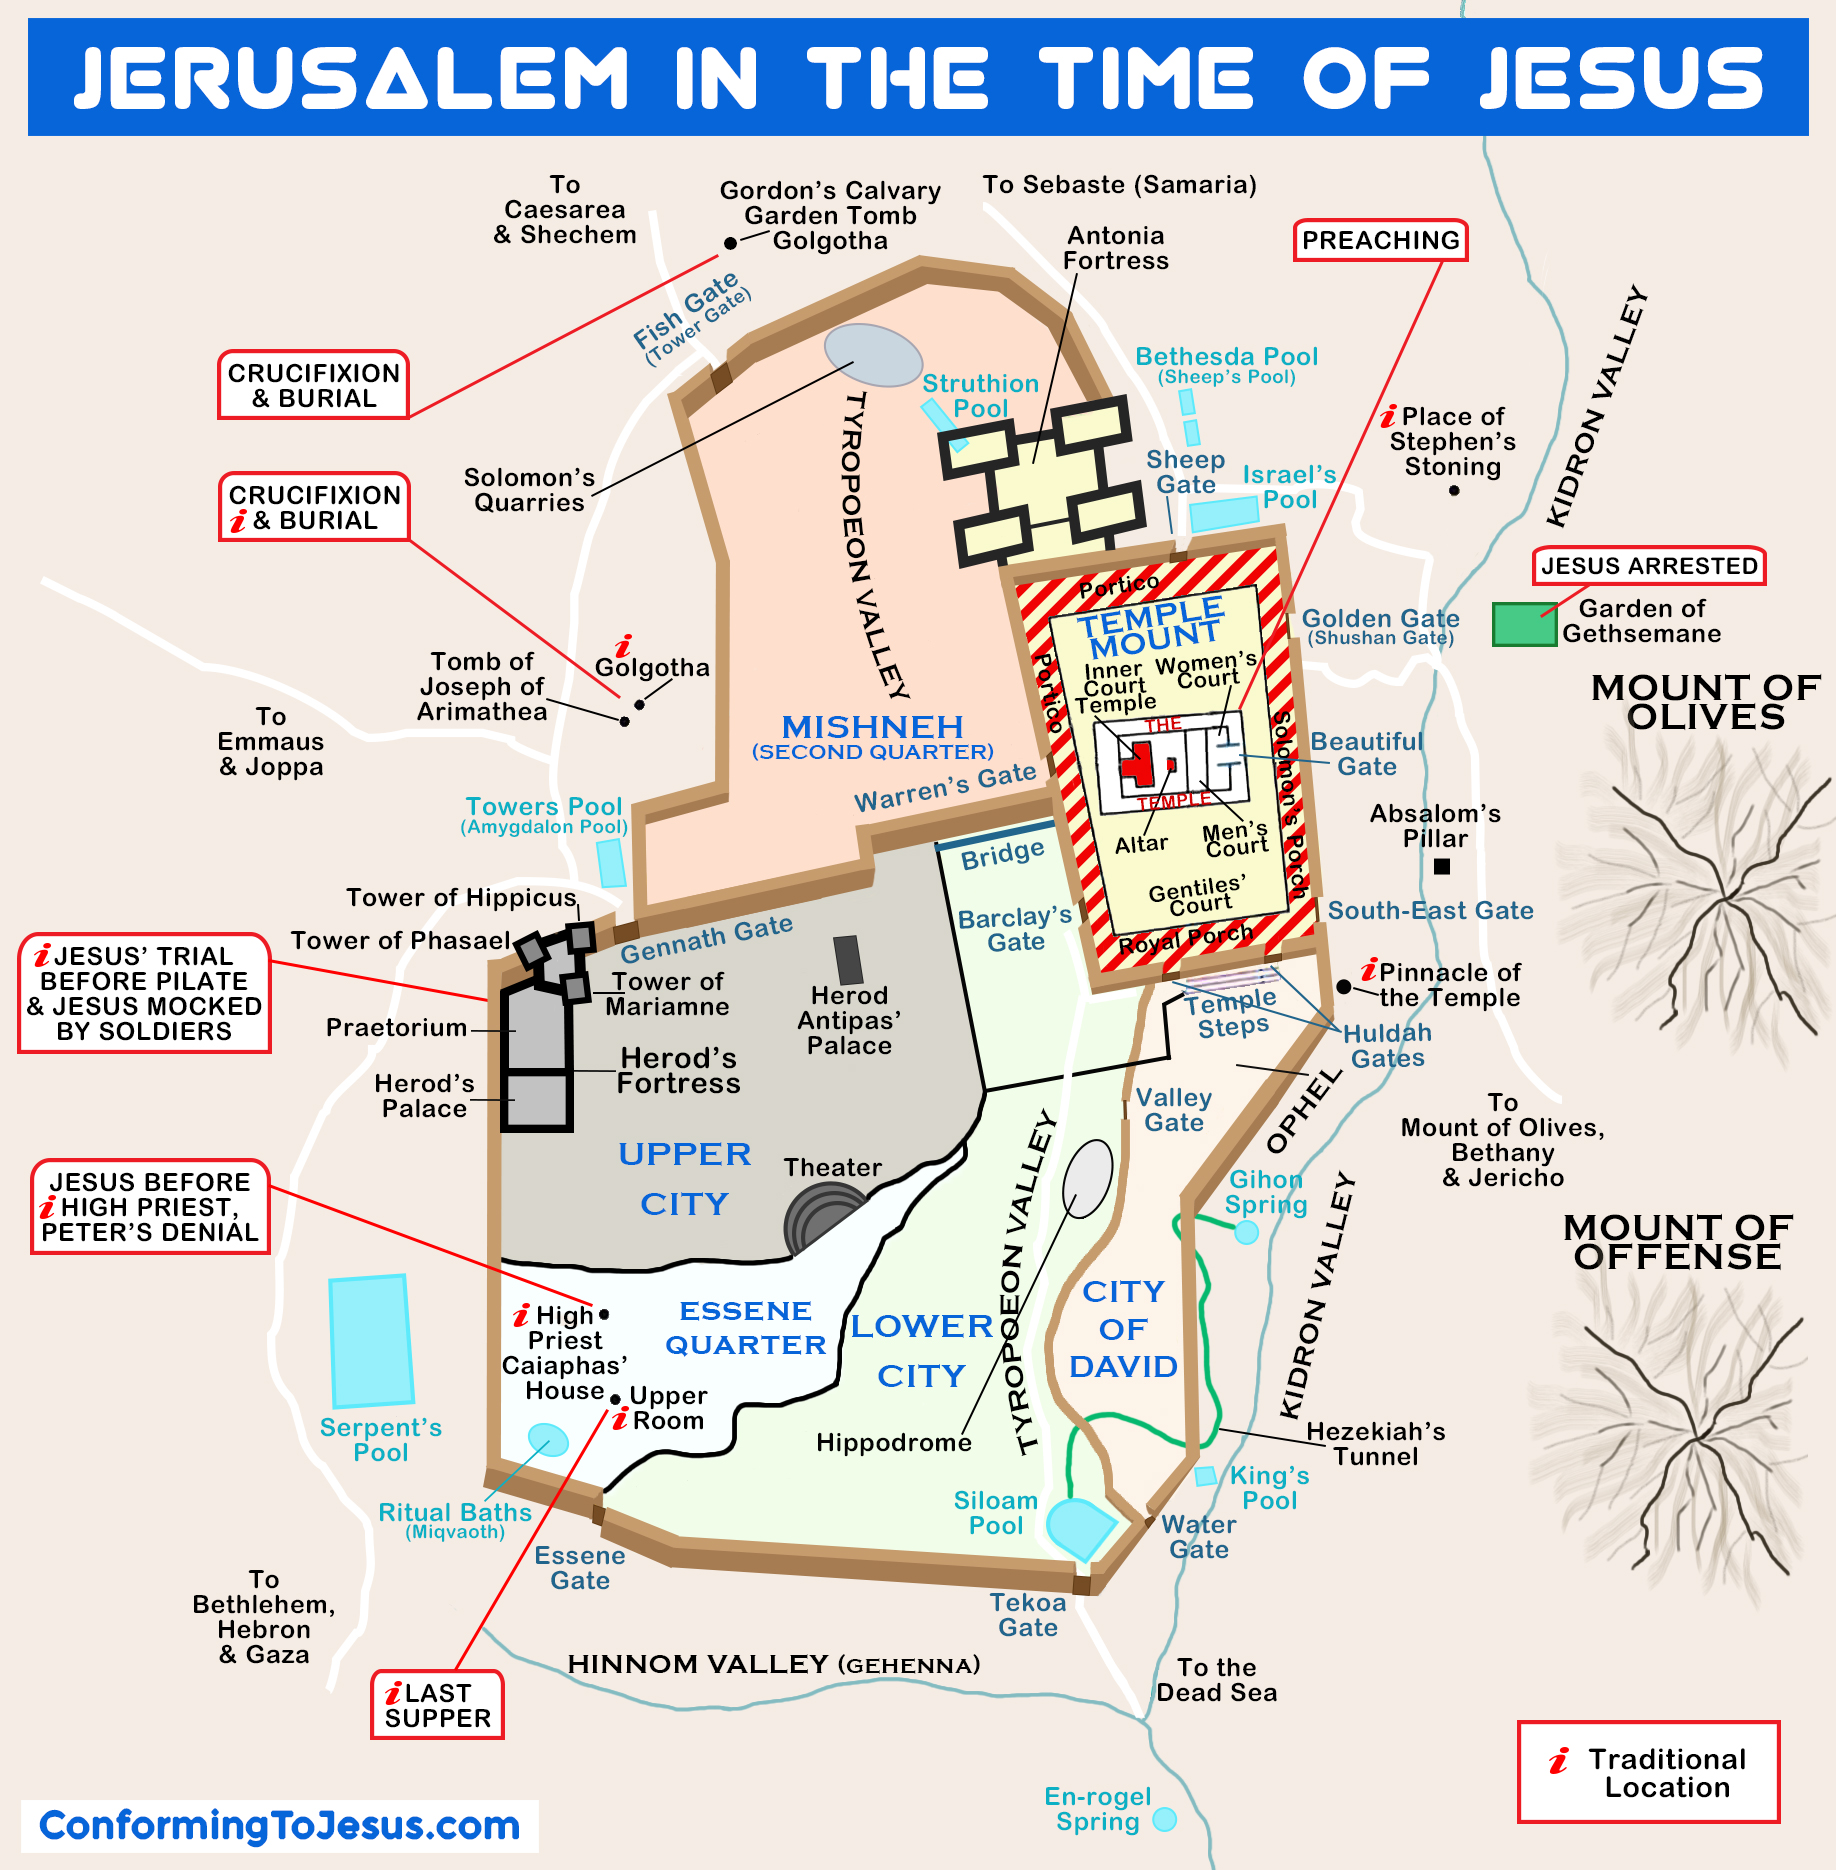 Jerusalem in Jesus' Time Map - New Testament Times Jerusalem on map of palestine during new testament time, samaria during jesus time, map of jesus travels, jerusalem during christ time, jerusalem map at jesus time, map of palestine during the time of christ, map at time of jesus, the world in jesus time, map of bible lands, map judea samaria galilee in jesus time, map of time of jesus, galilee during jesus time, map of palestine in new testament times, map of john the baptist ministry, map of capernaum in biblical times, map of palestine in biblical times, map of israel in christ's time, topographical map of jerusalem in jesus time, map of christ jerusalem, map of jesus ministry,